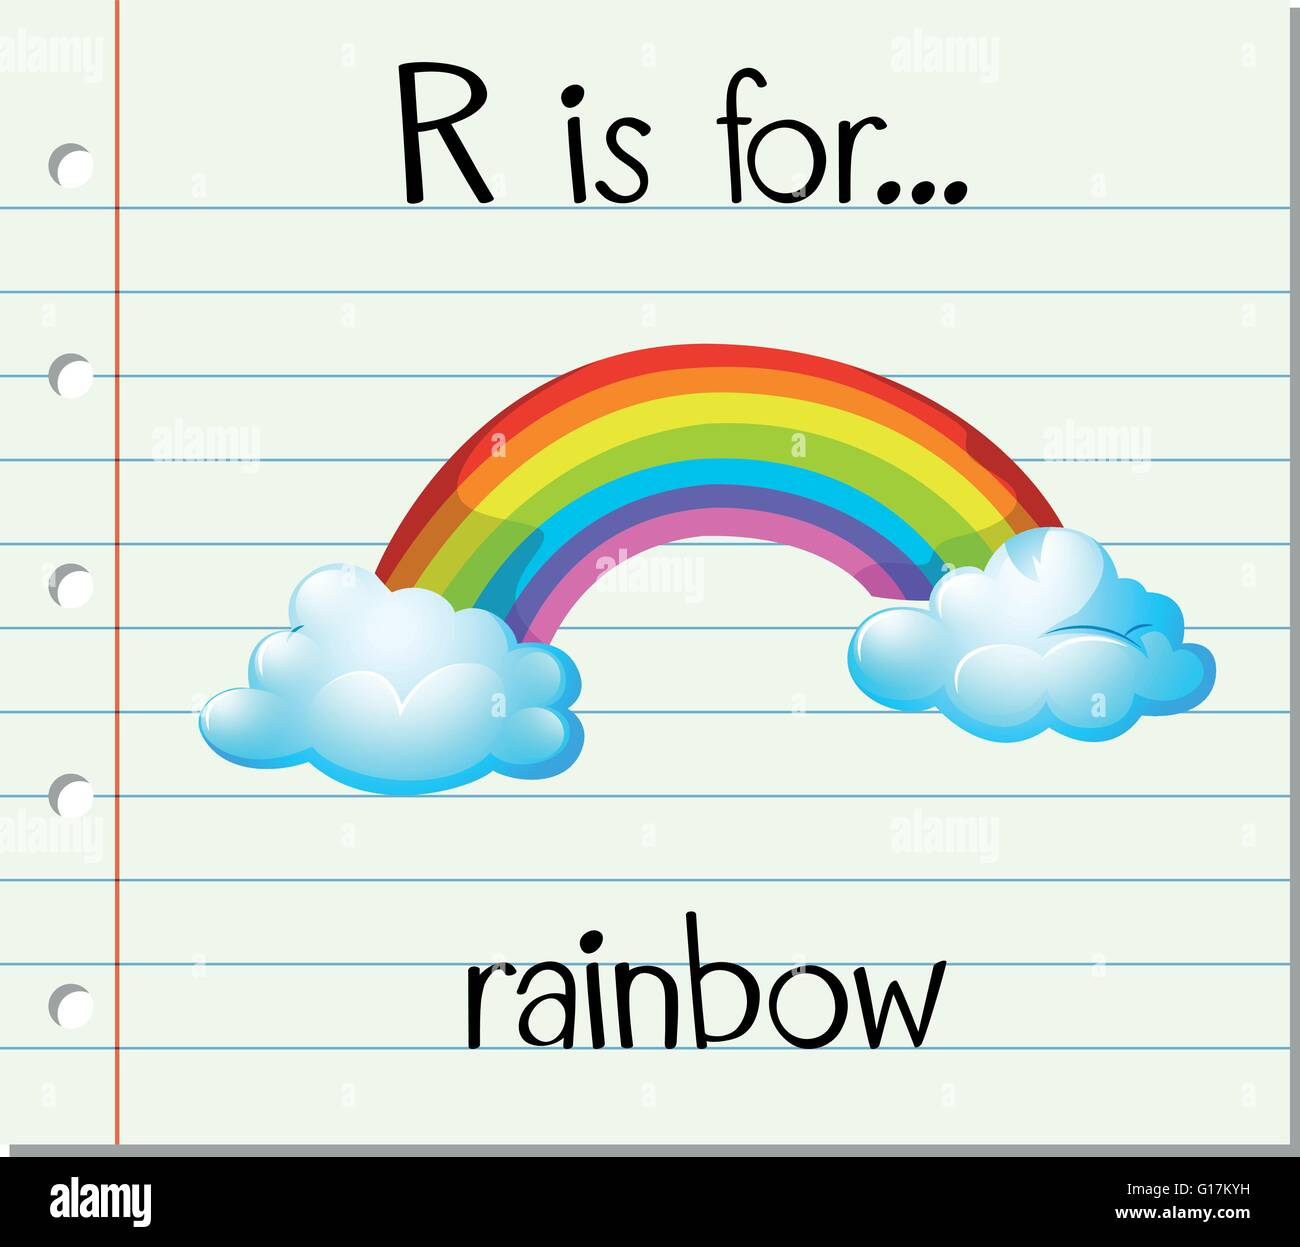 flashcard letter r is for rainbow illustration stock vector art